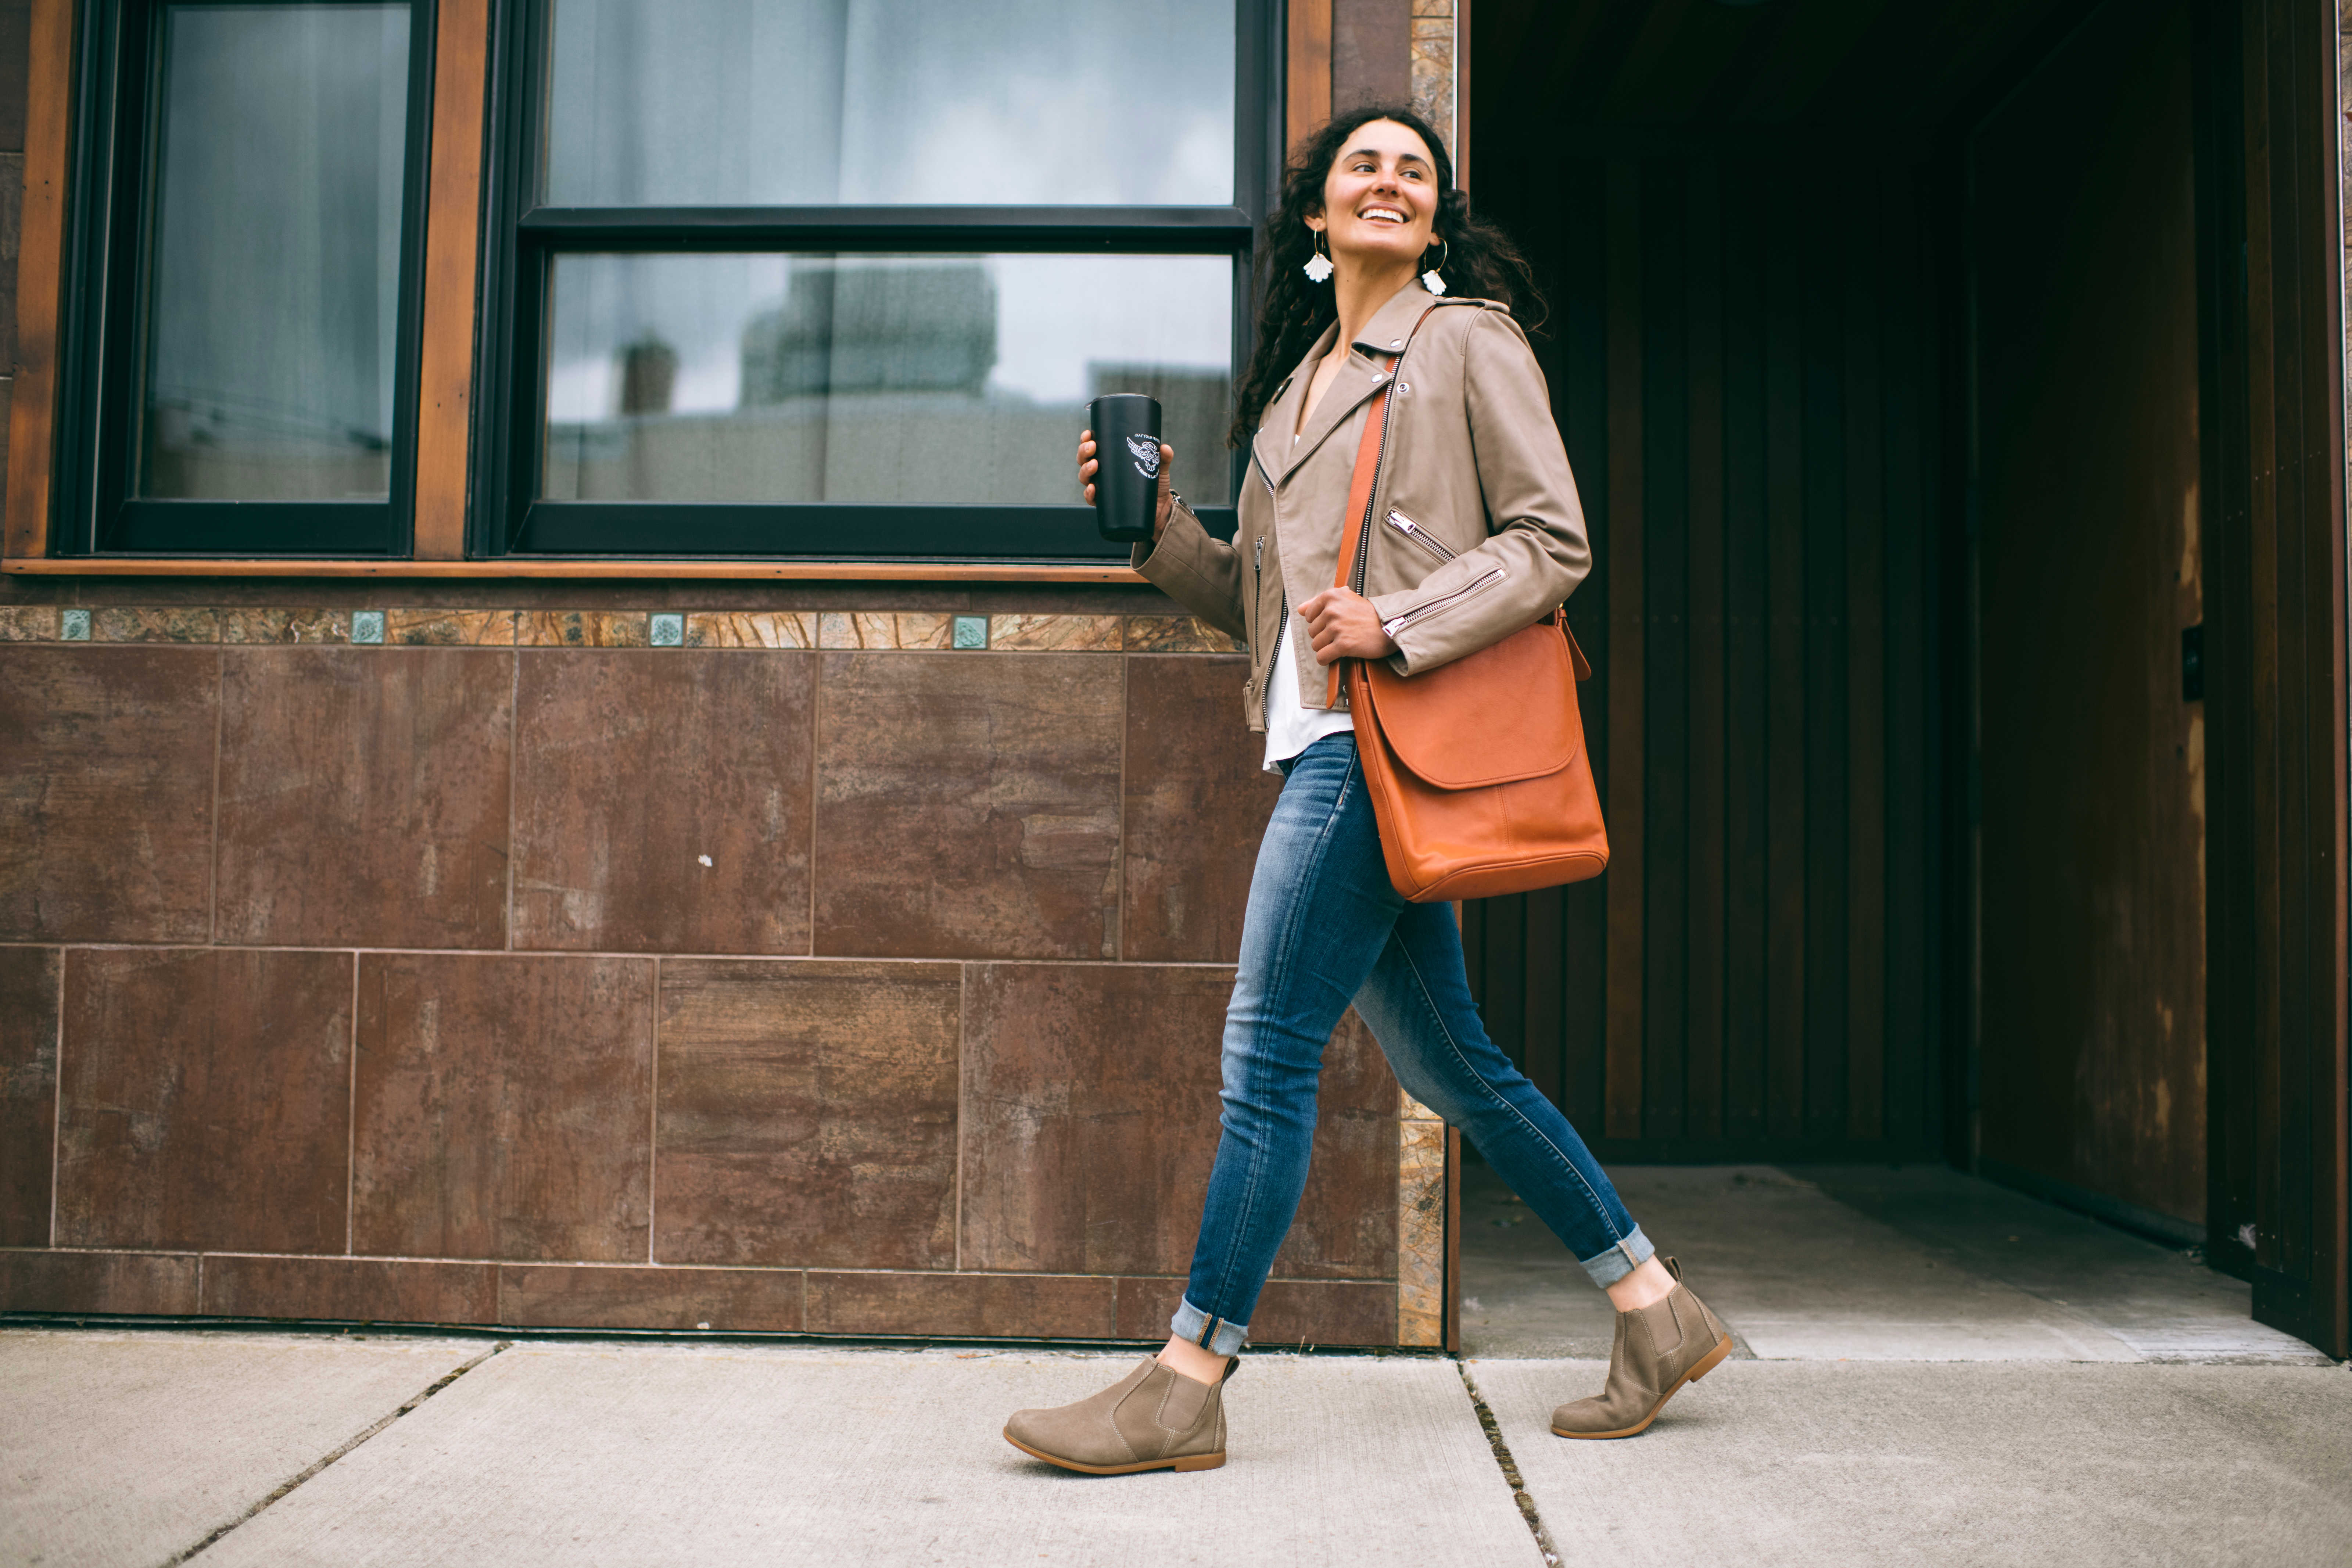 Woman smiles as she walks down a city street holding a cup of coffee